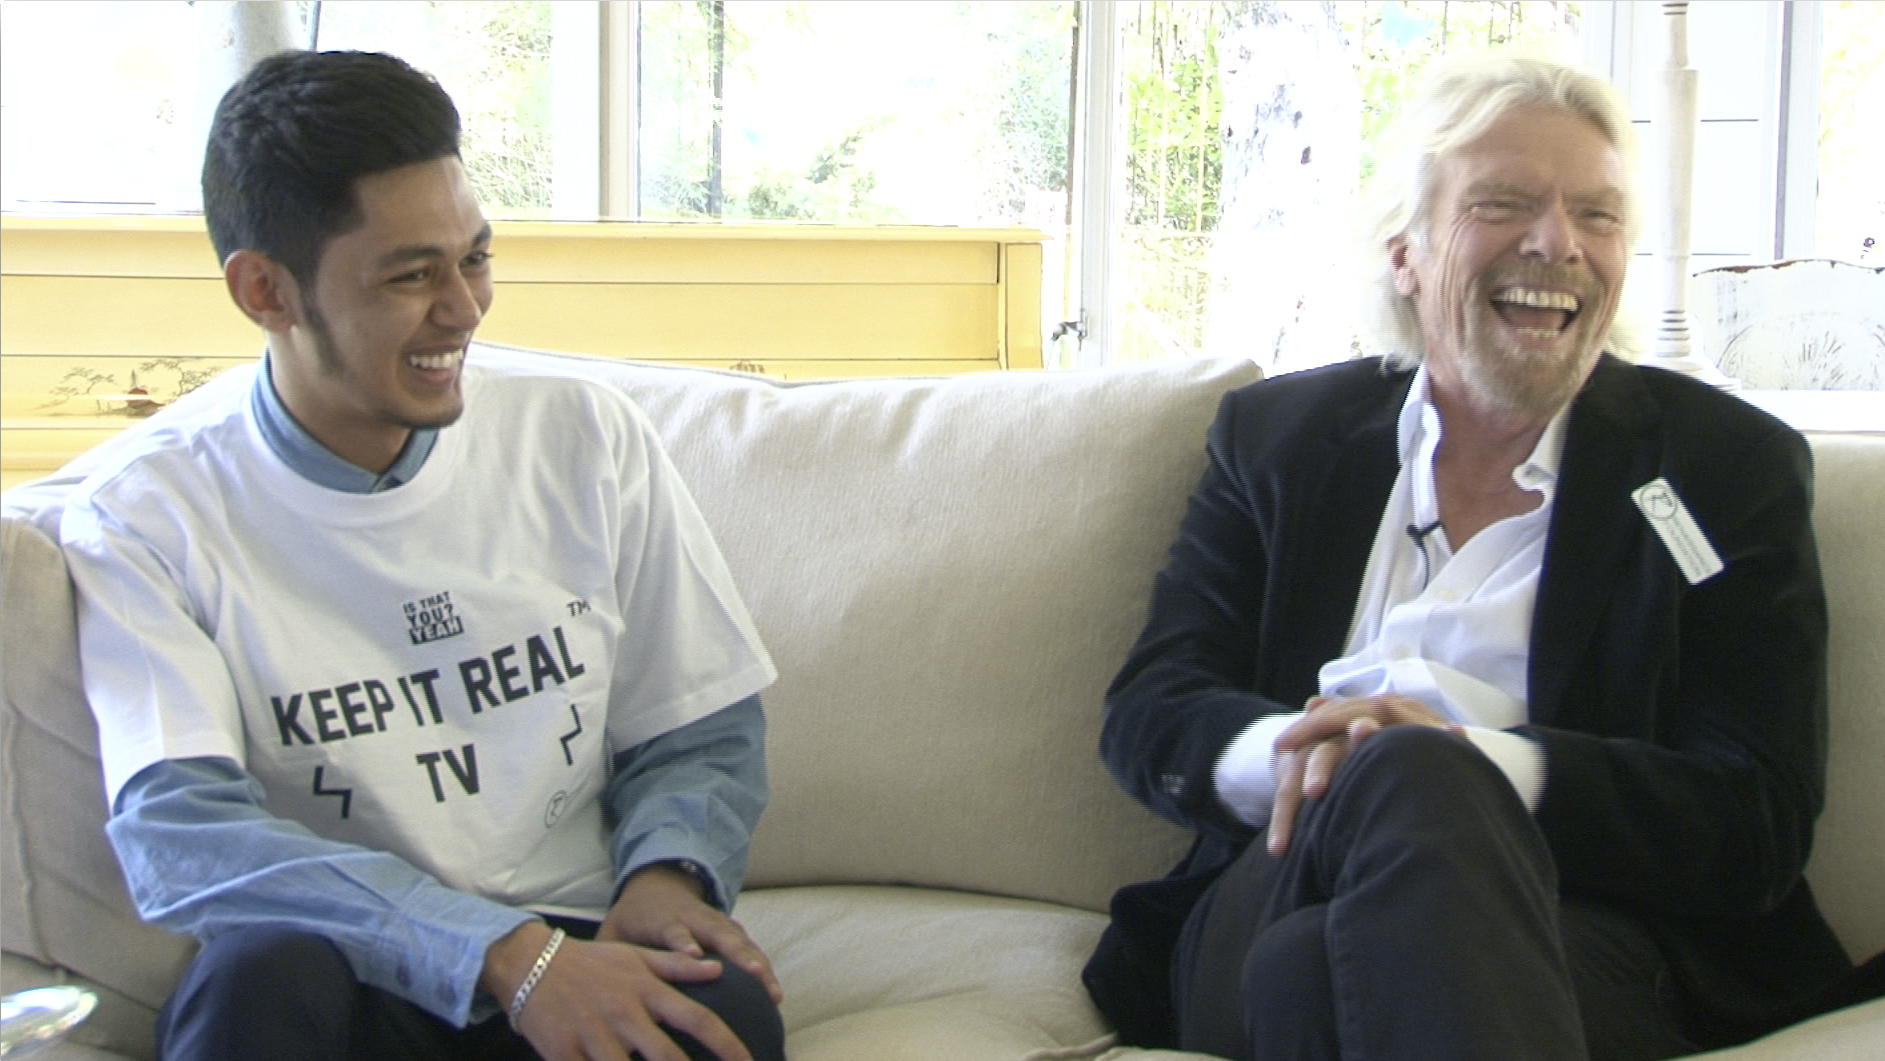 A young leader interviewing Richard Branson